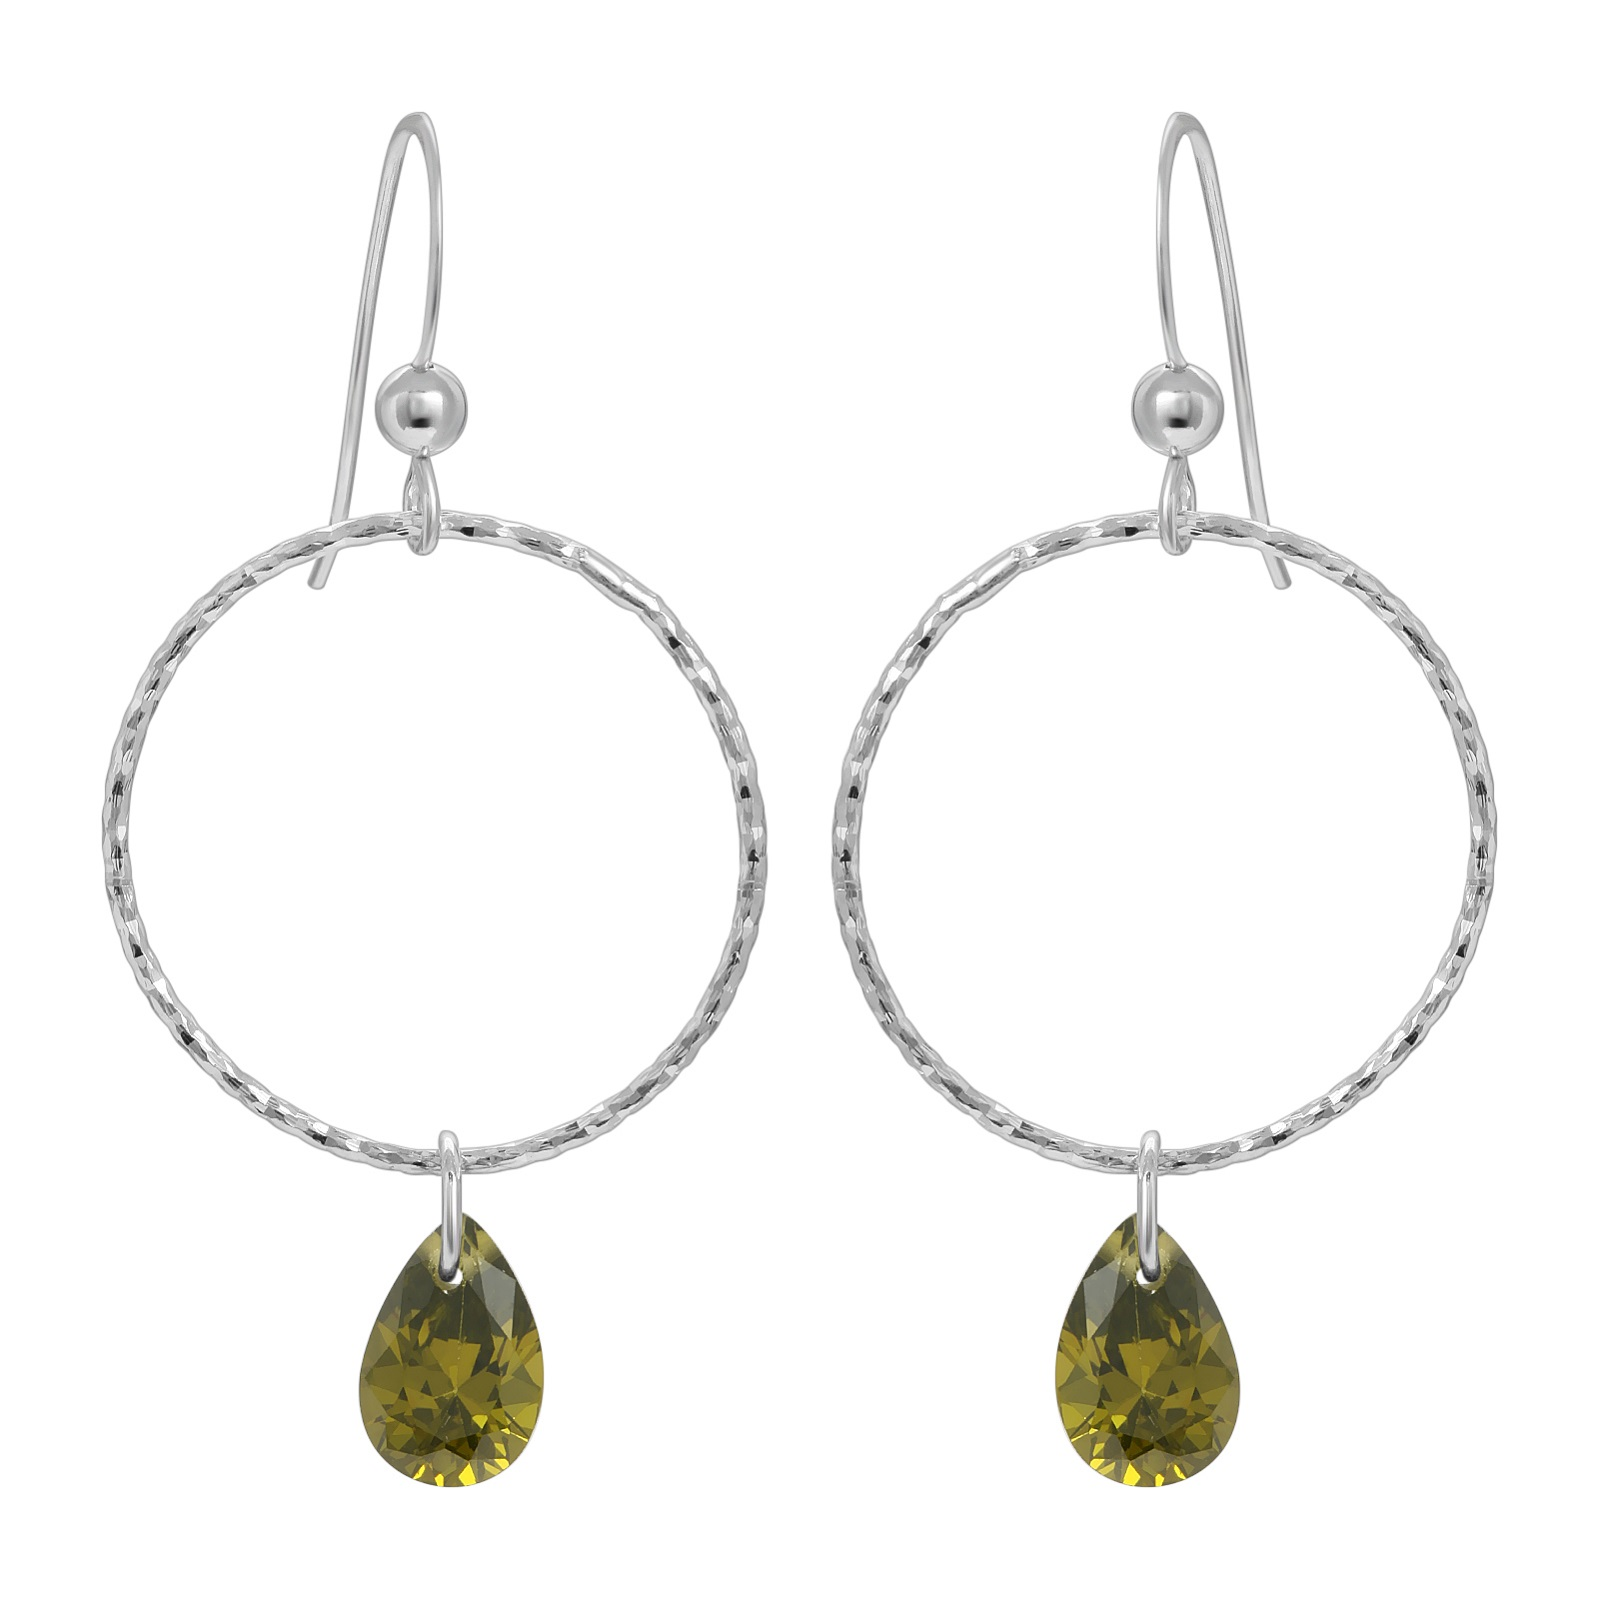 CZ Diamond Cut Hoops Earrings - Olivine